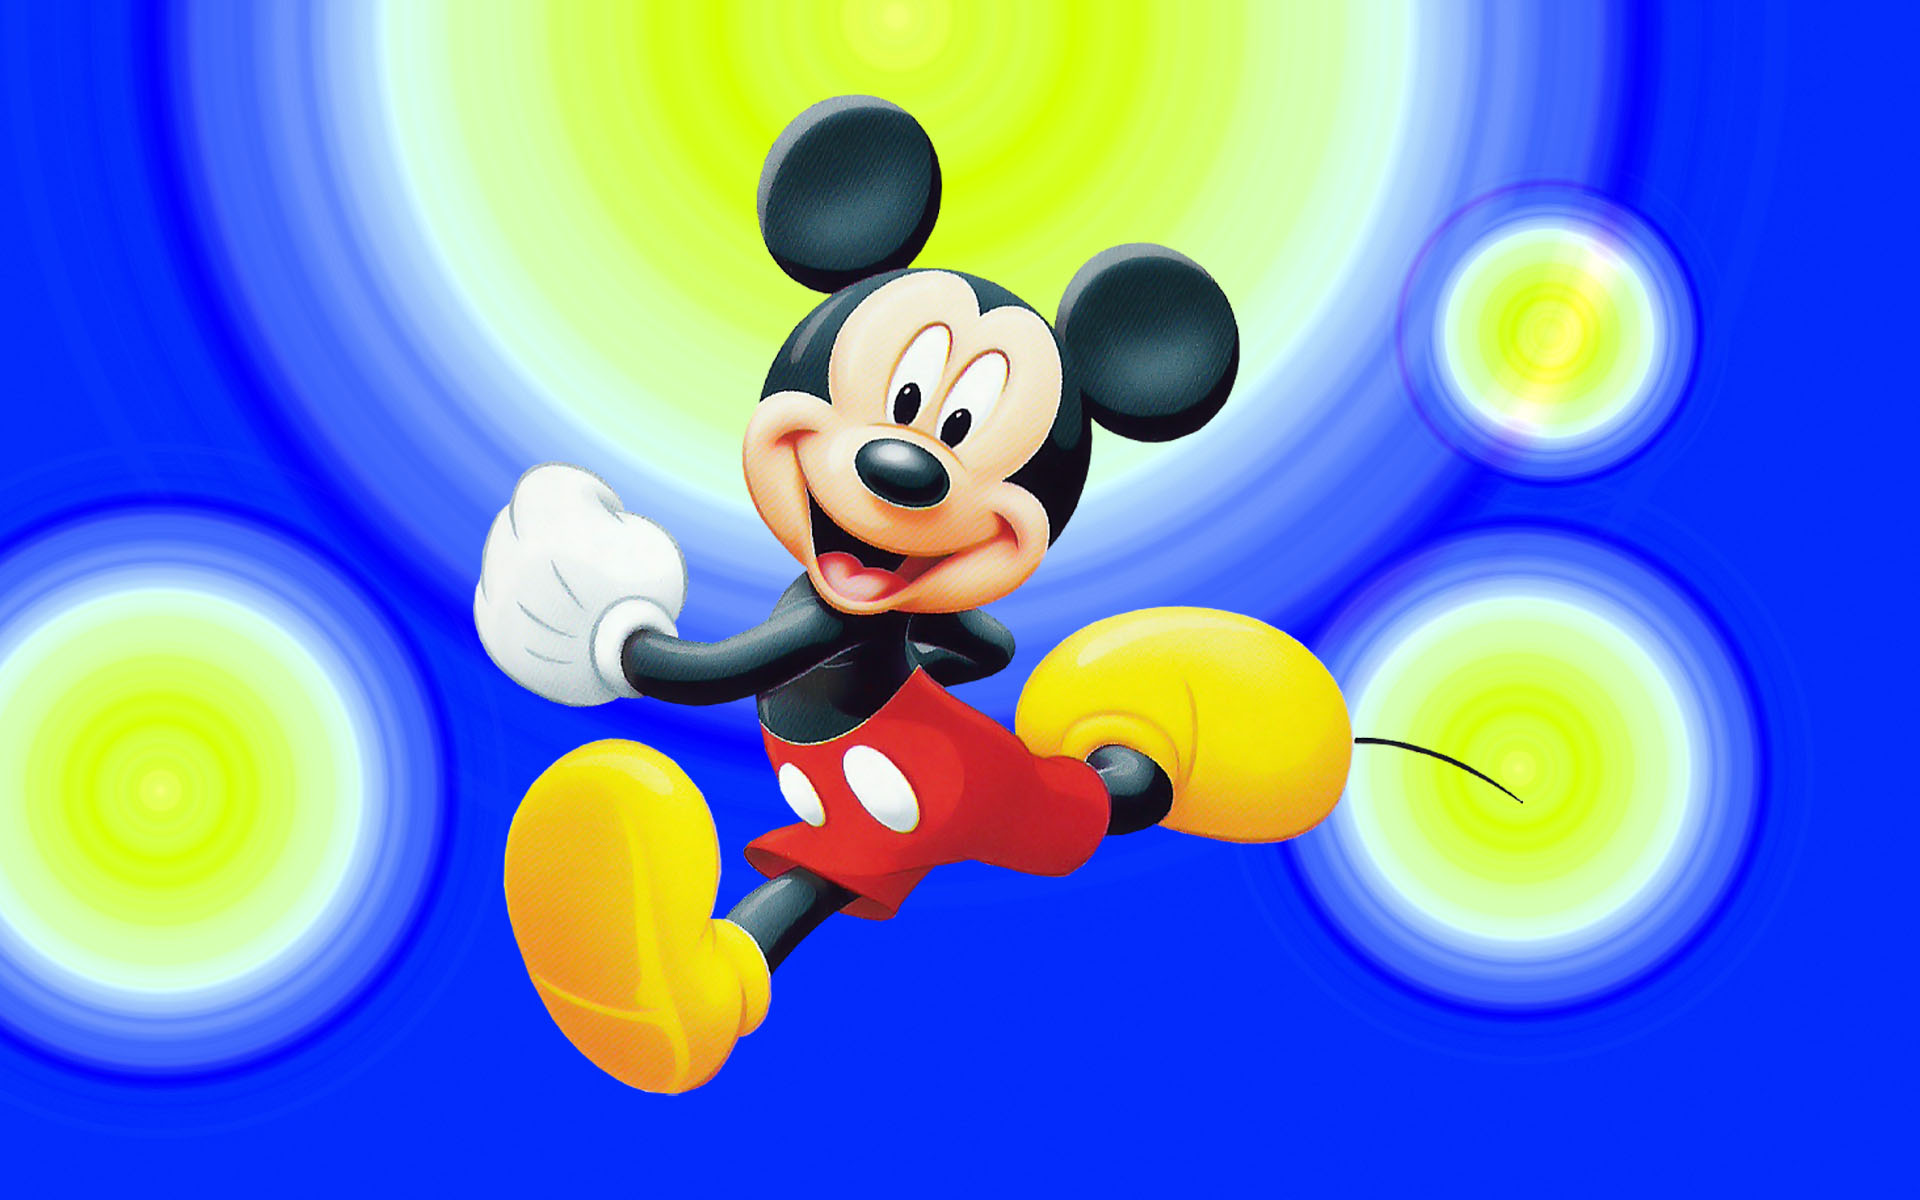 Pink Car Wallpaper Iphone Mickey Mouse Cartoons Images Mobile Wallpapers Hd Free